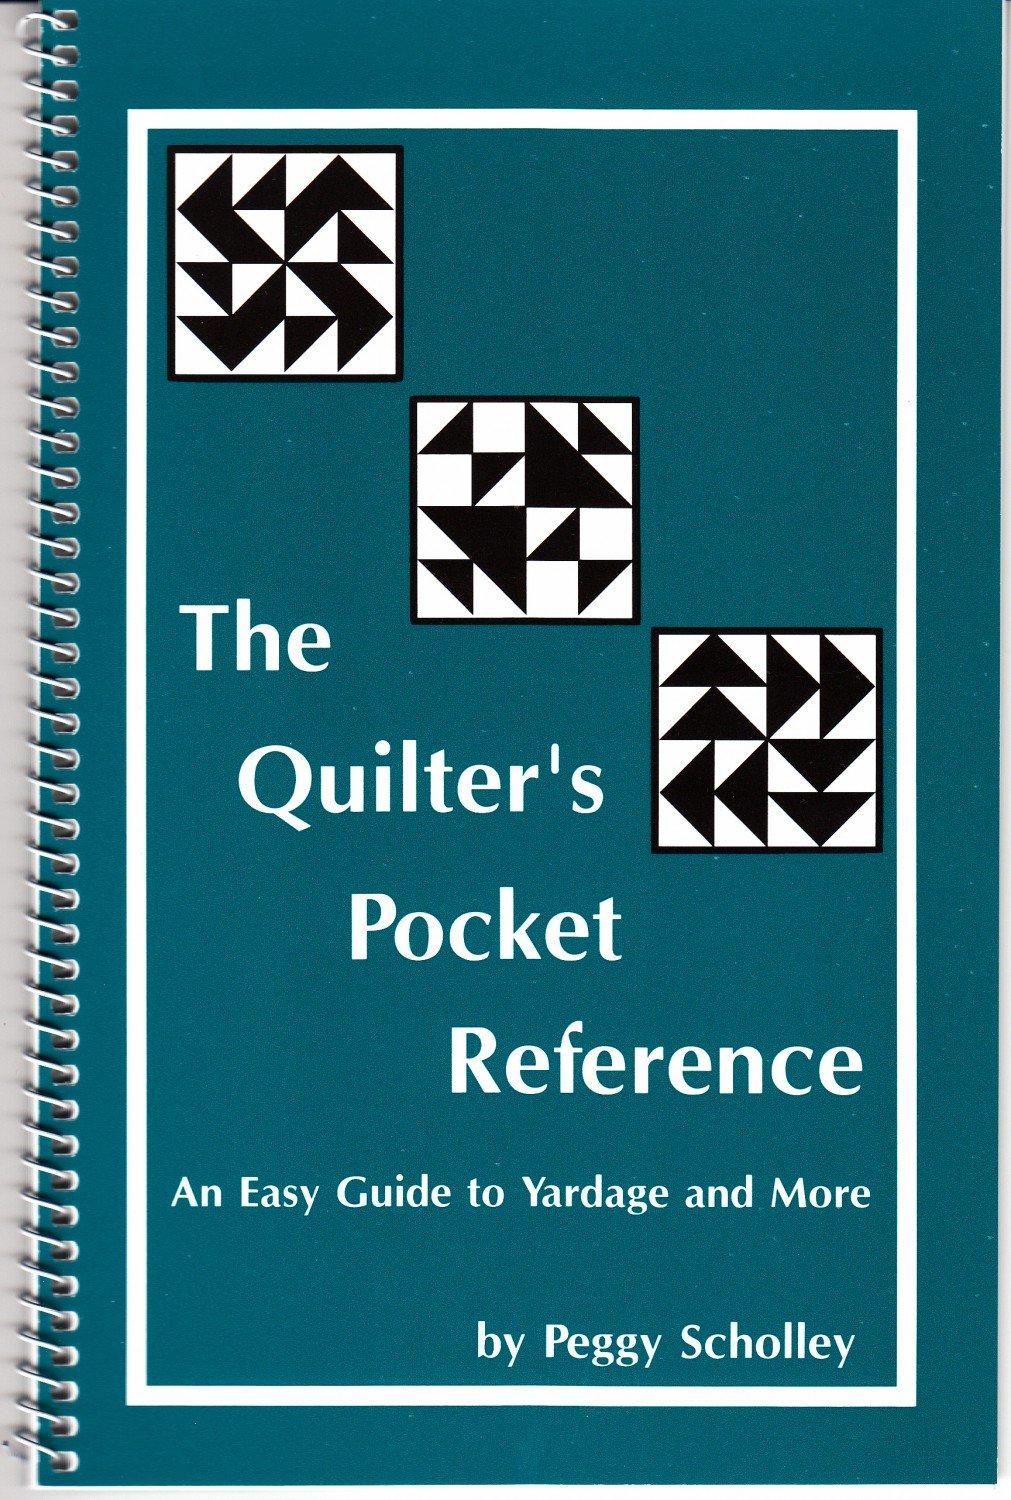 The Quilter's Pocket Reference